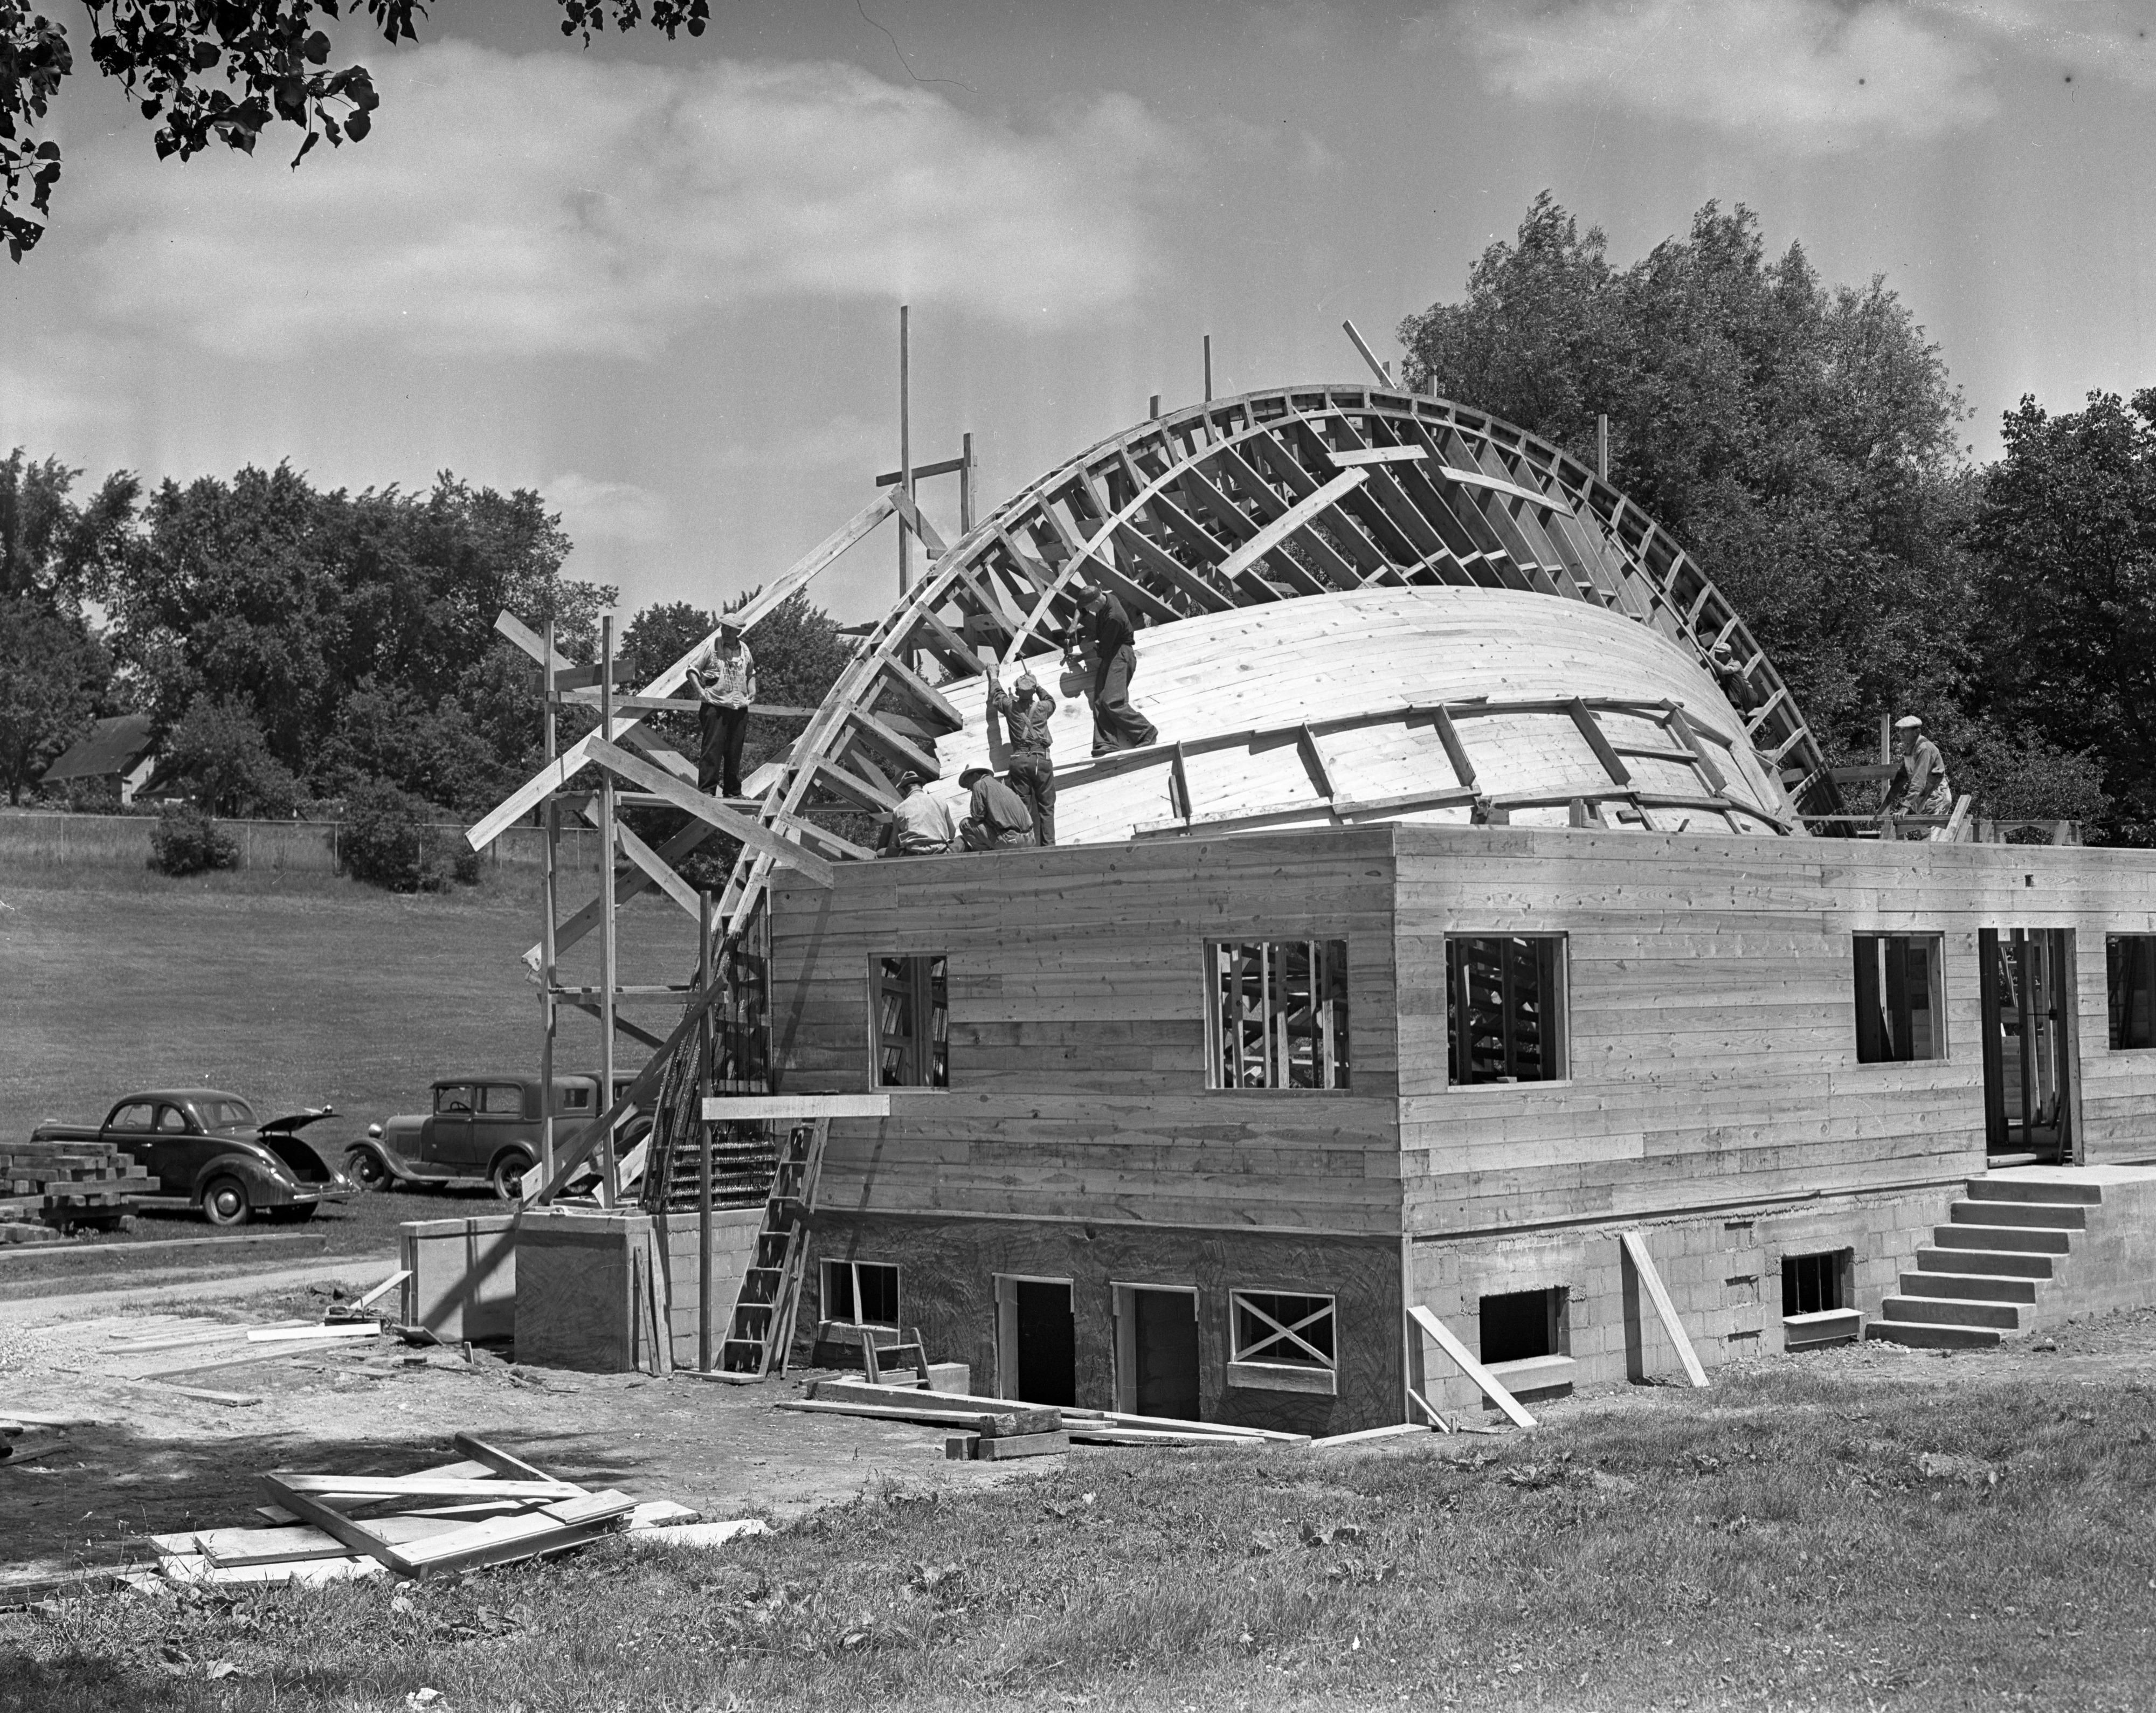 West Park Orchestra Shell nearing completion, June 1938 image